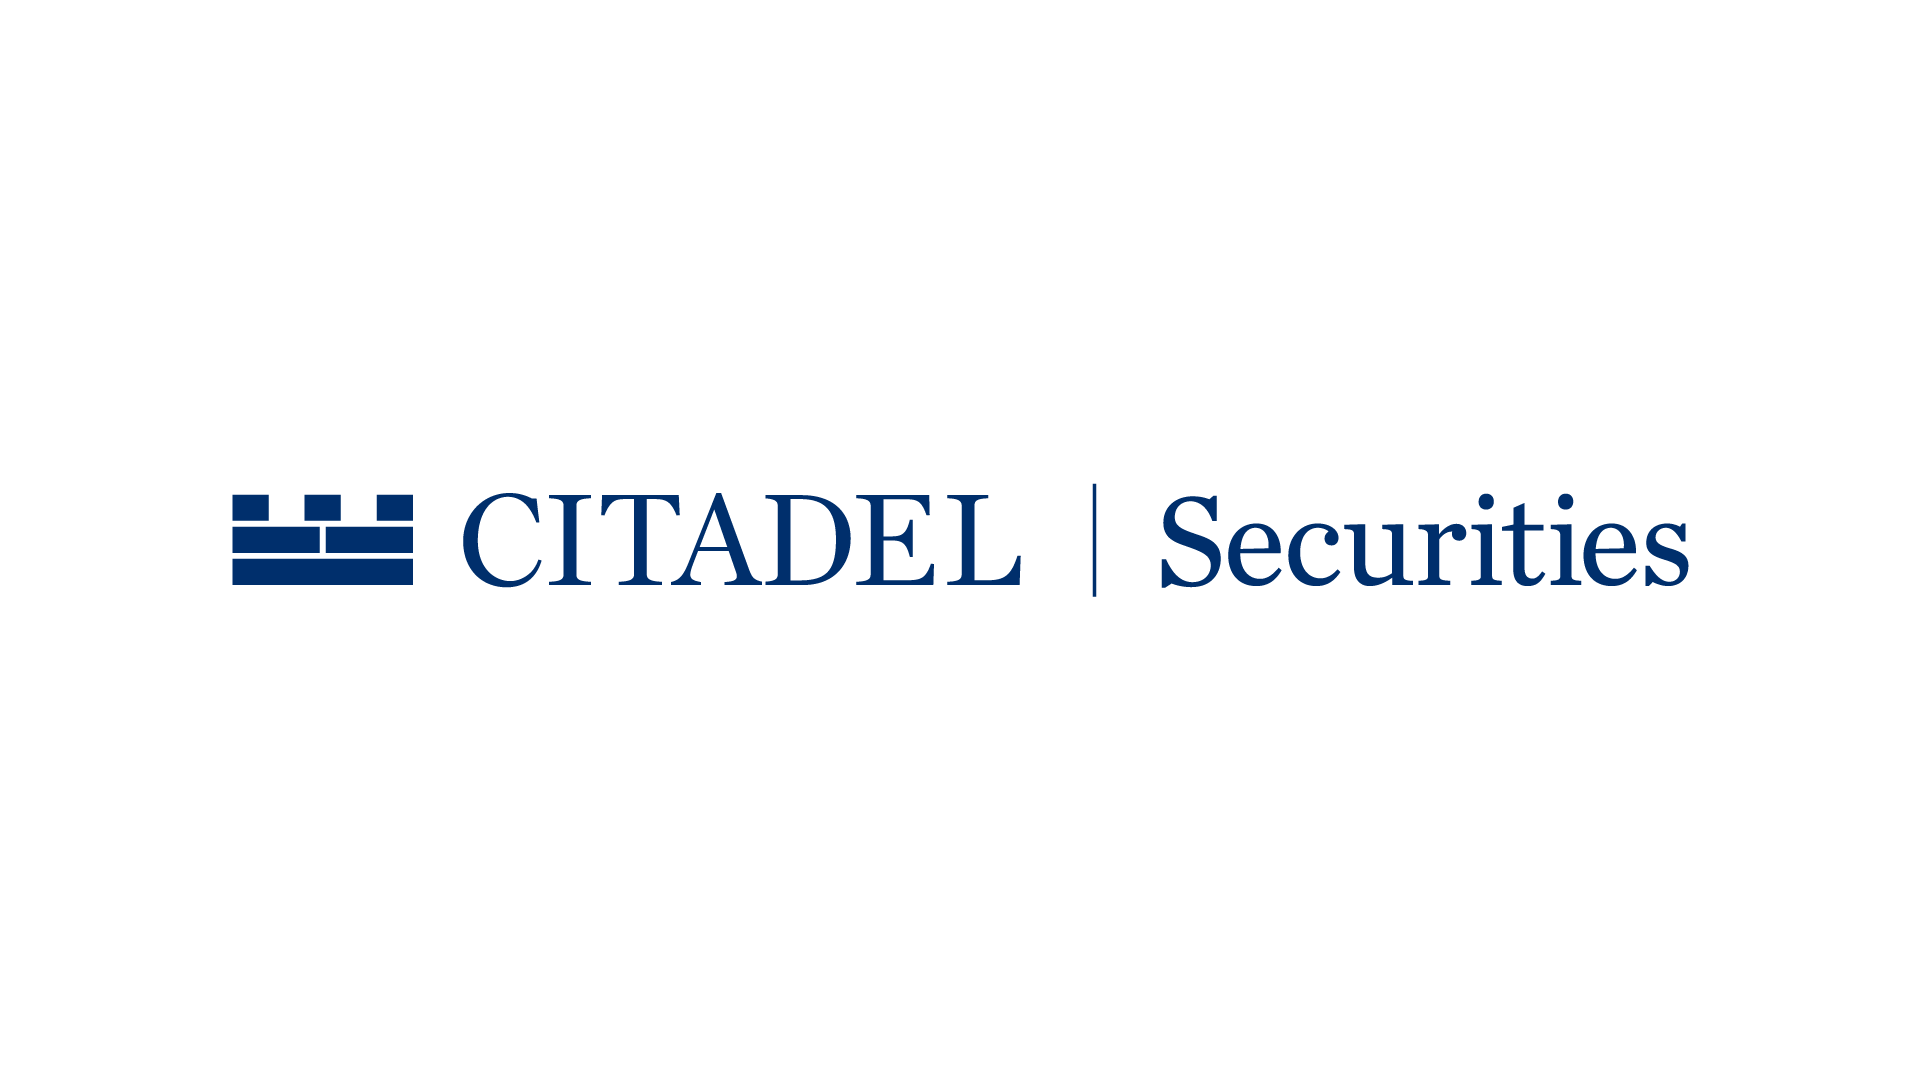 Citadel Securities company logo